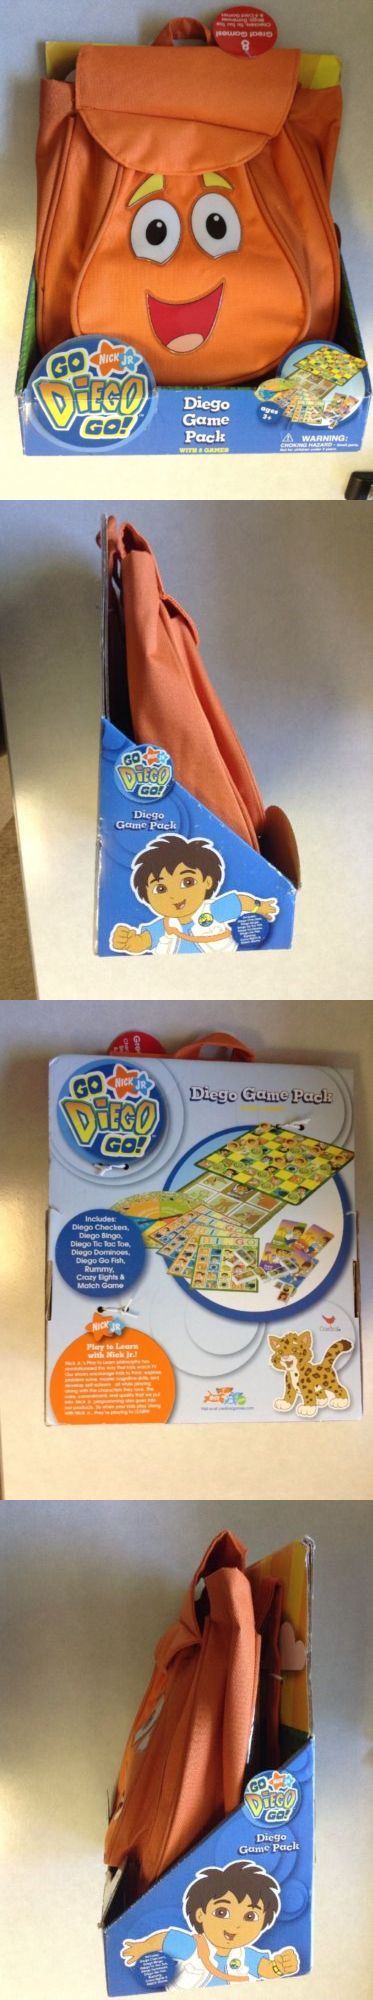 Dora the Explorer 44039: New Nick Jr Go Diego Go Diego Game Pack With 8 Games Ages 3+ -> BUY IT NOW ONLY: $49.99 on eBay!